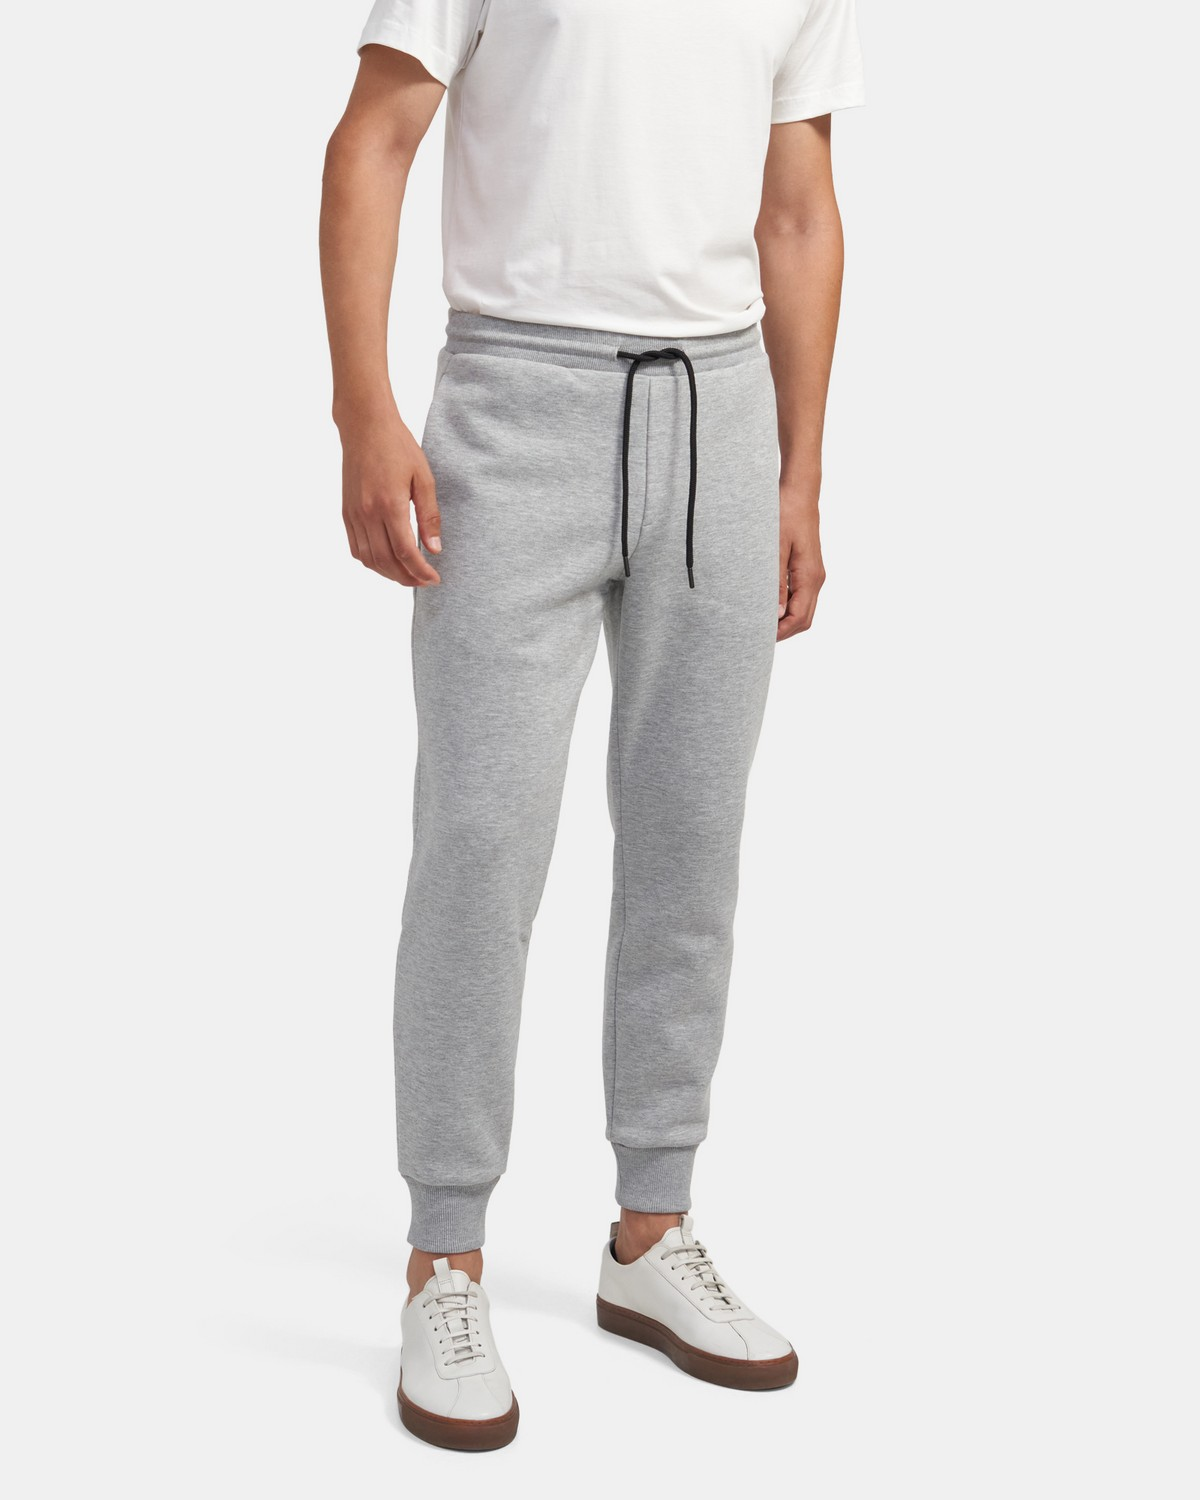 Essential Sweatpants in Cotton Fleece